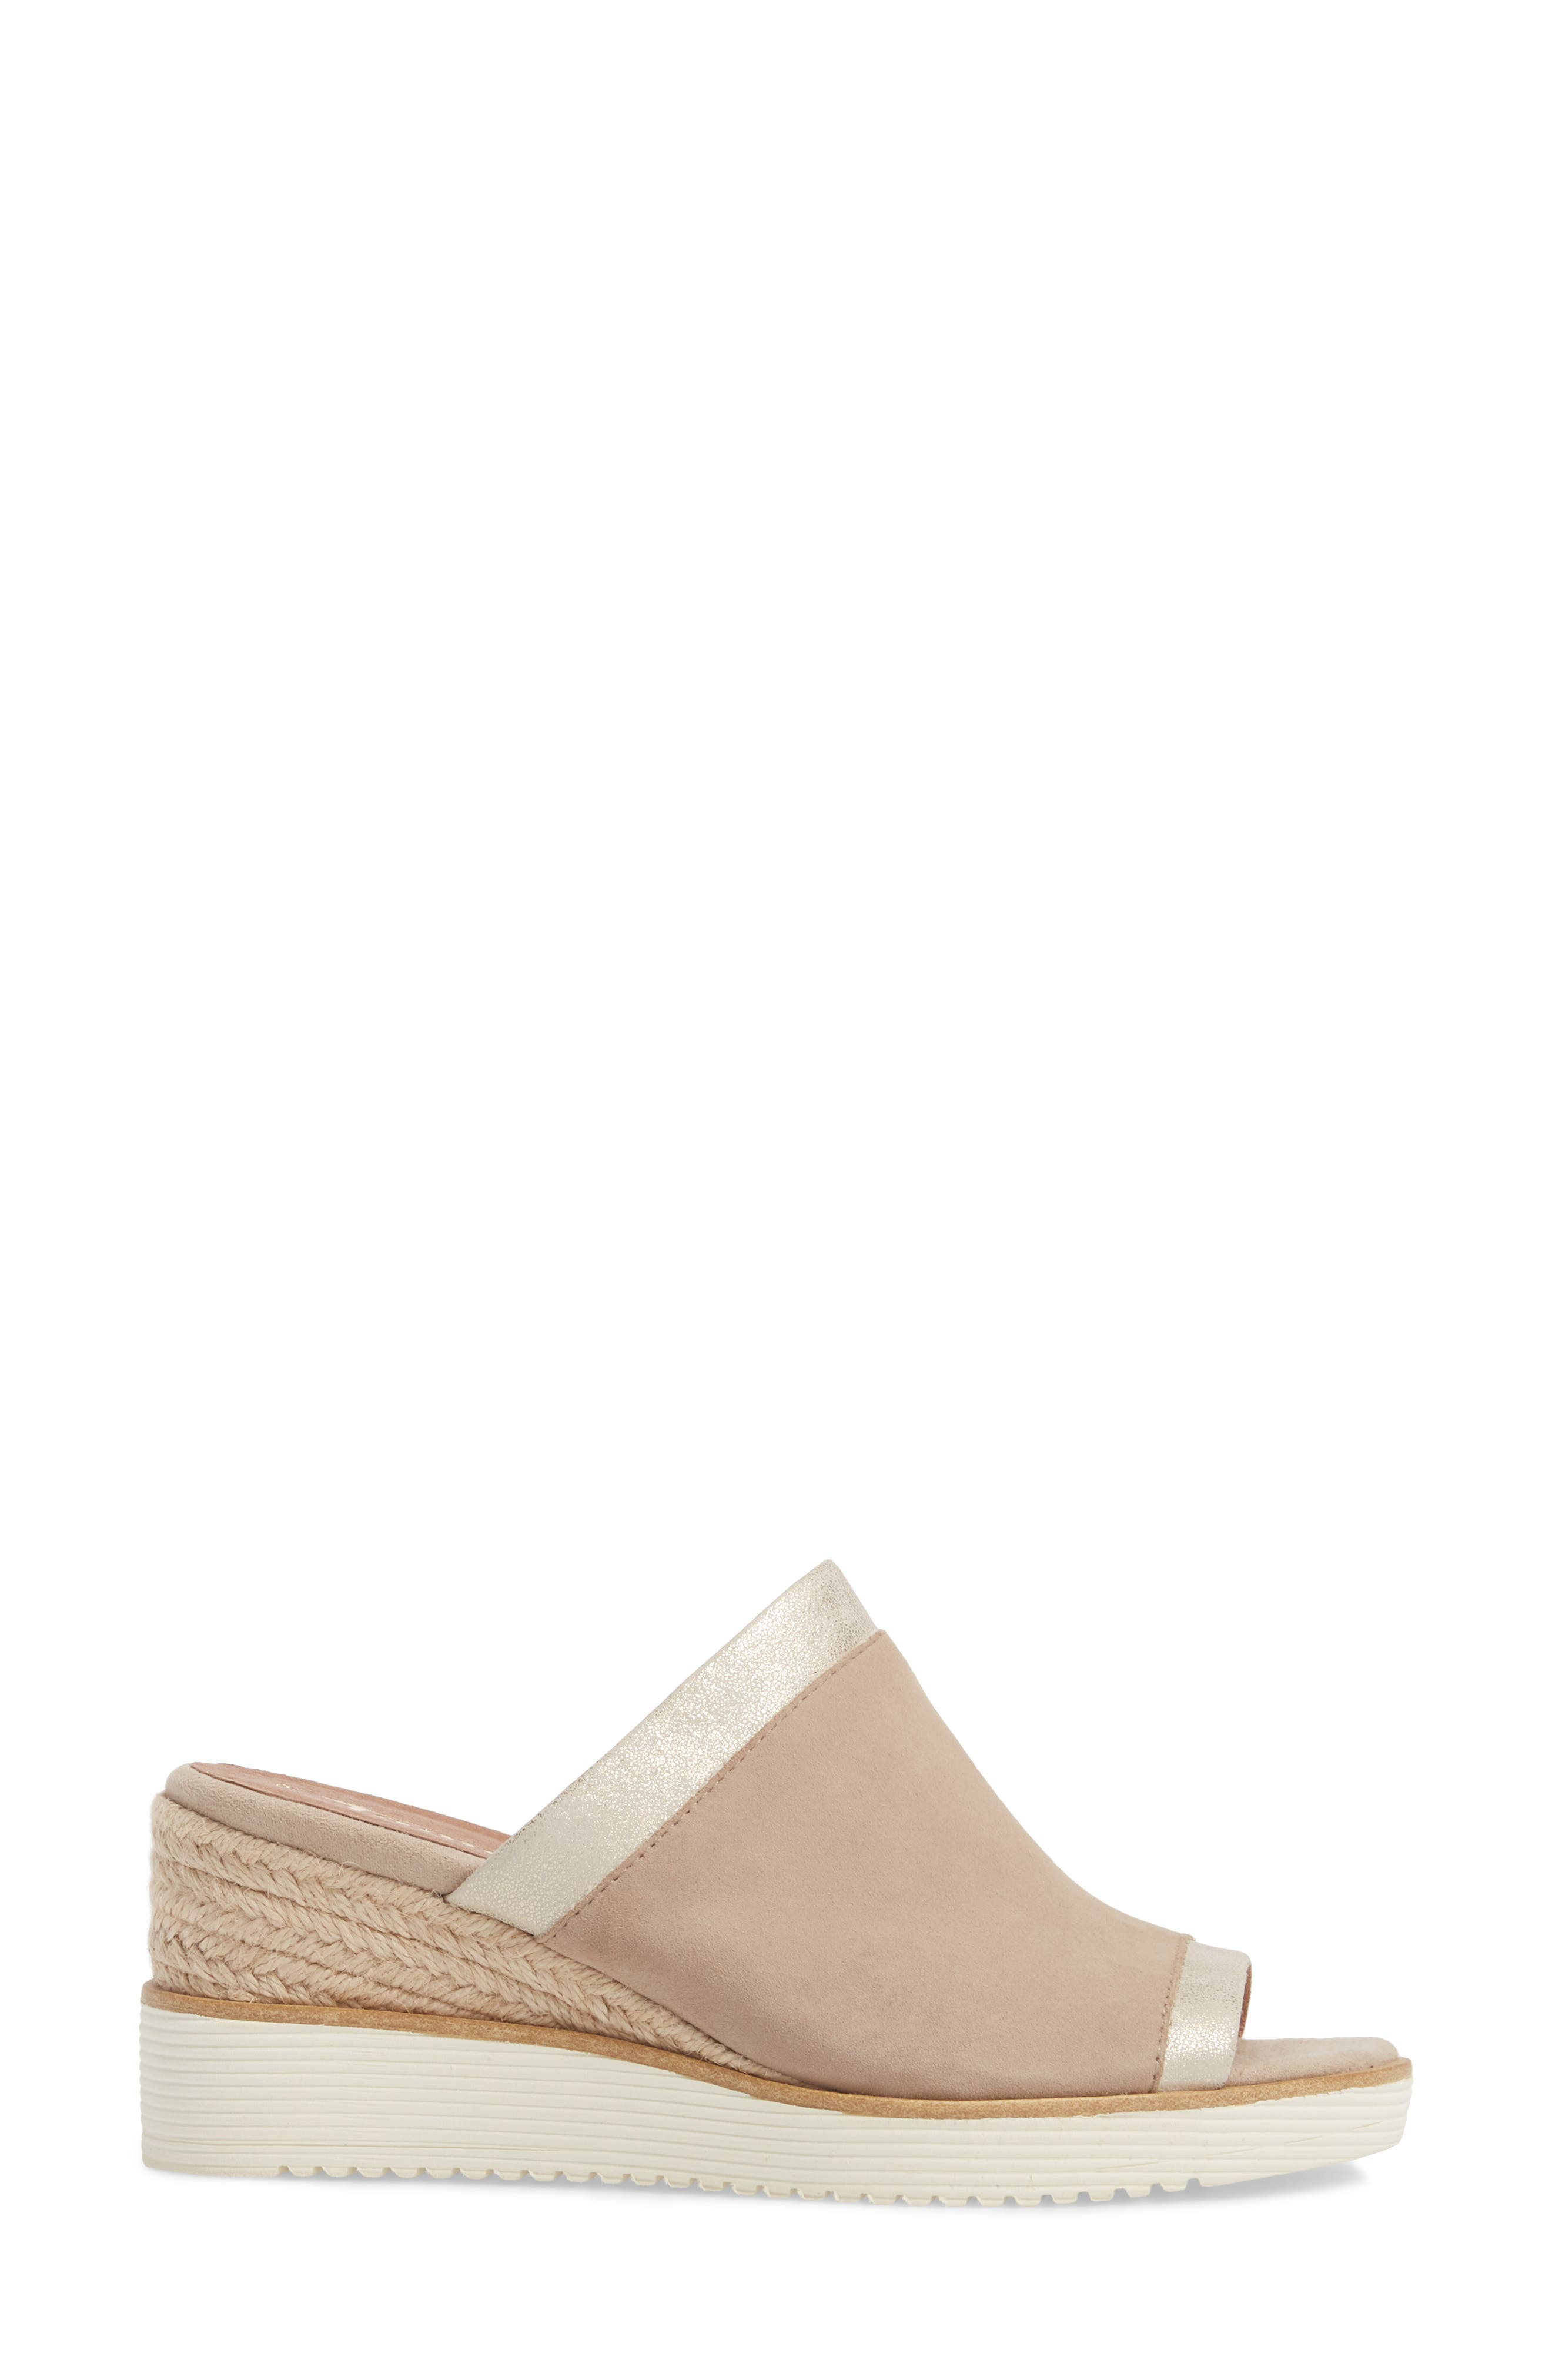 Alis Wedge Sandal,                             Alternate thumbnail 3, color,                             Shell Leather